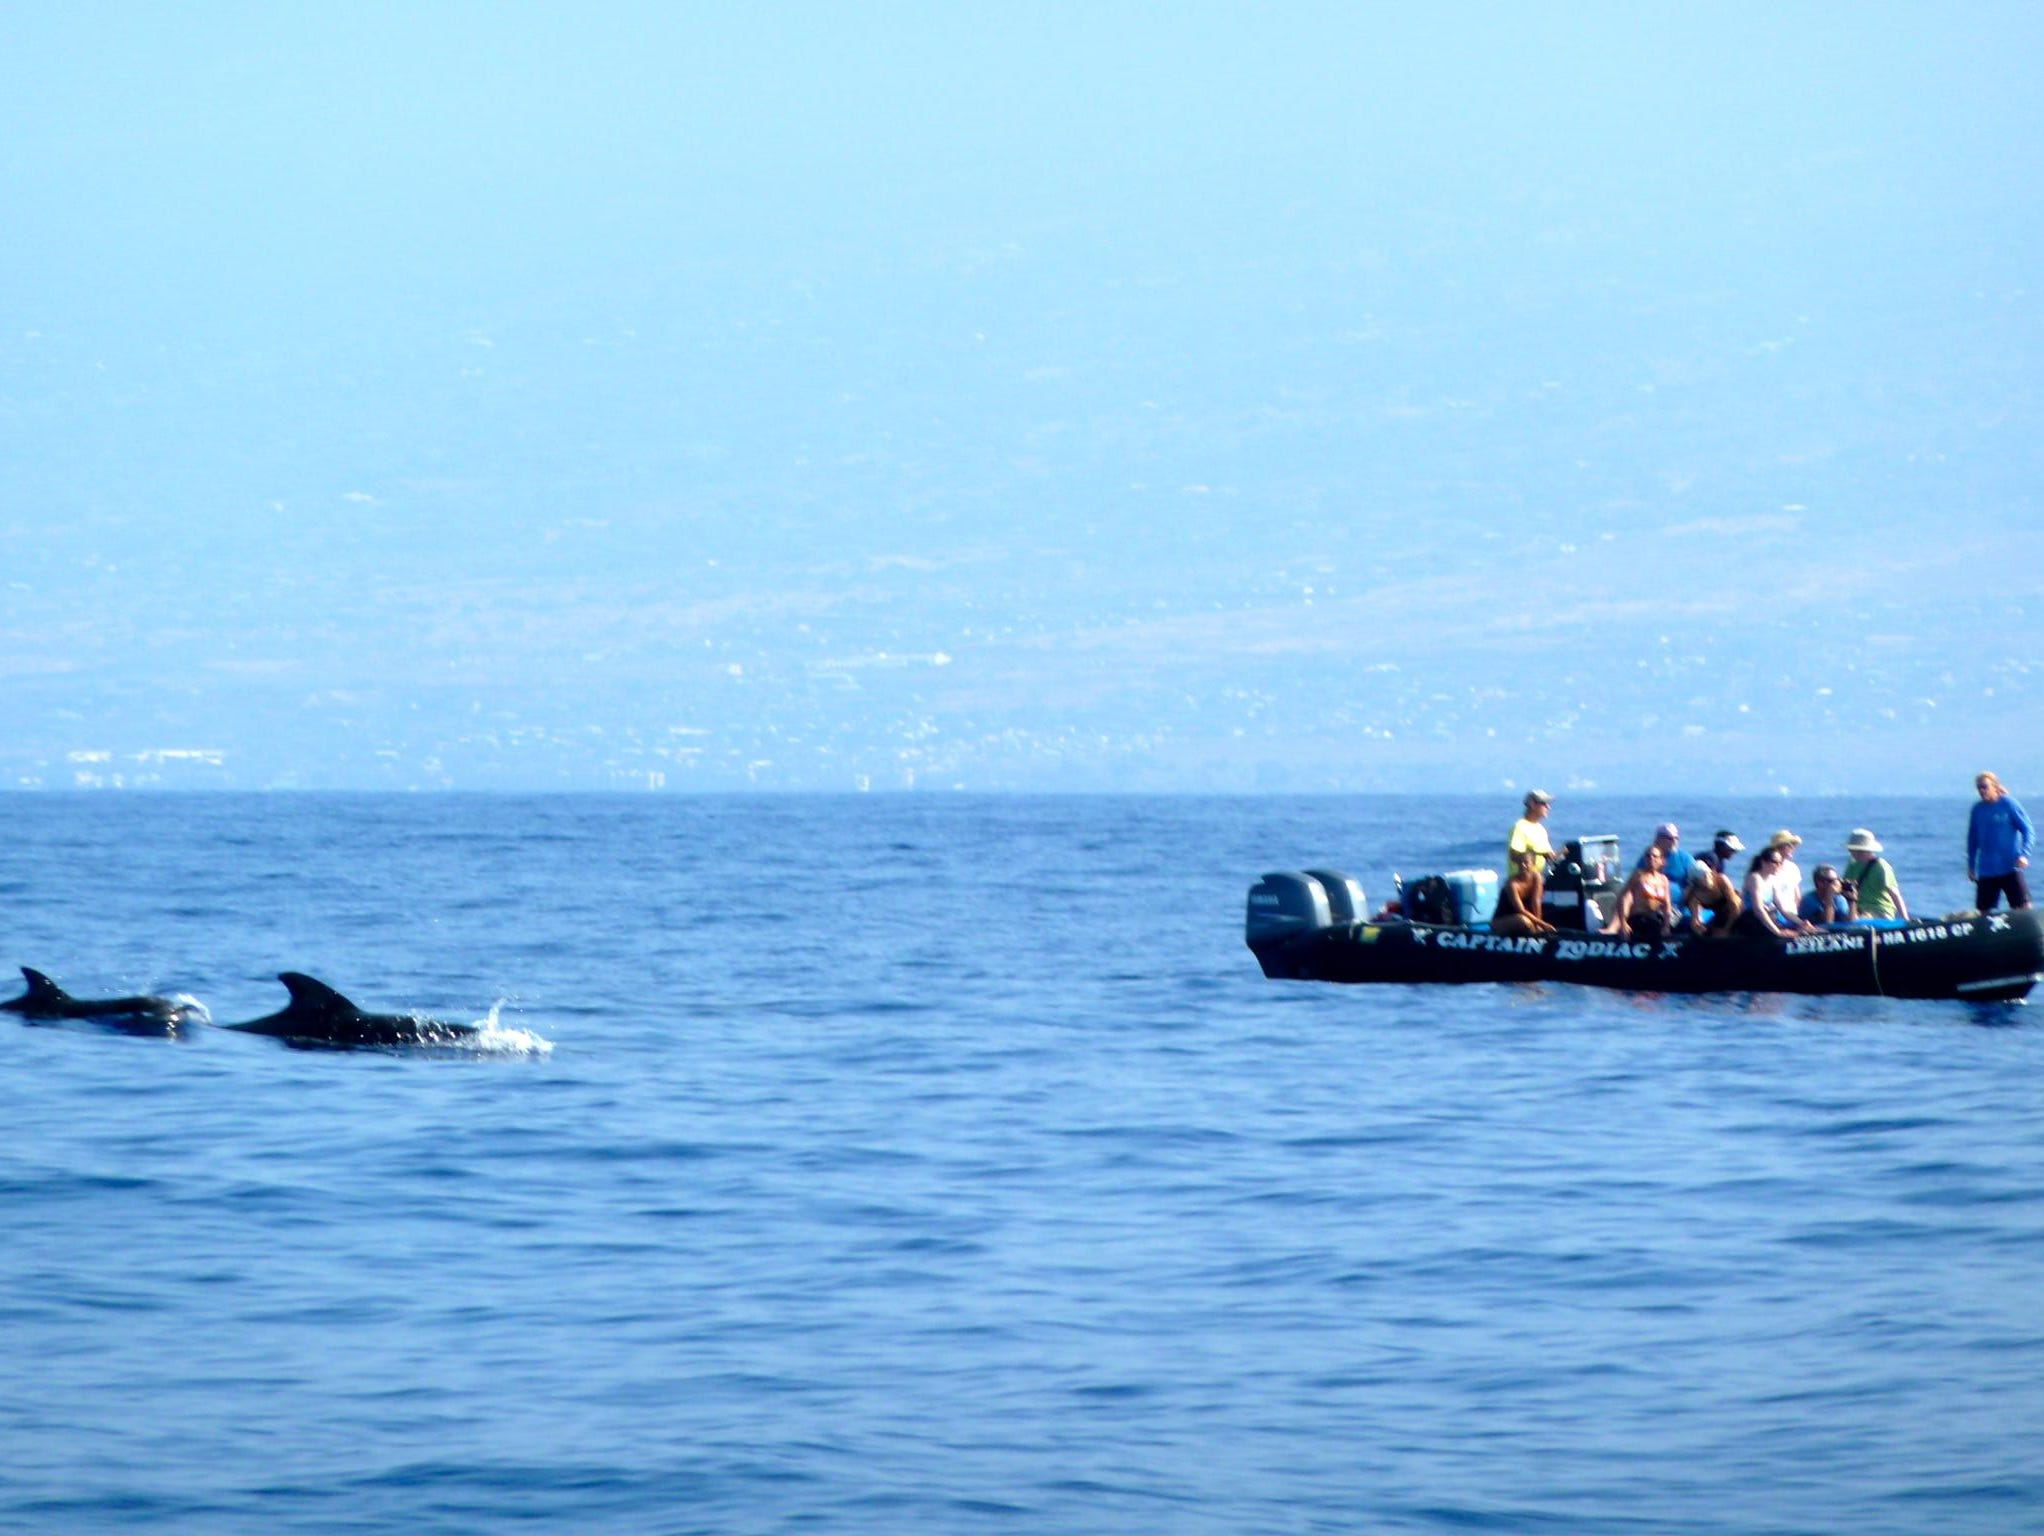 Un-Cruise also partners with local operators to take guests on high-speed zodiac rides through whale-feeding grounds. In this view, a pod of pilot whales breaches alongside a zodiac full of sightseers.